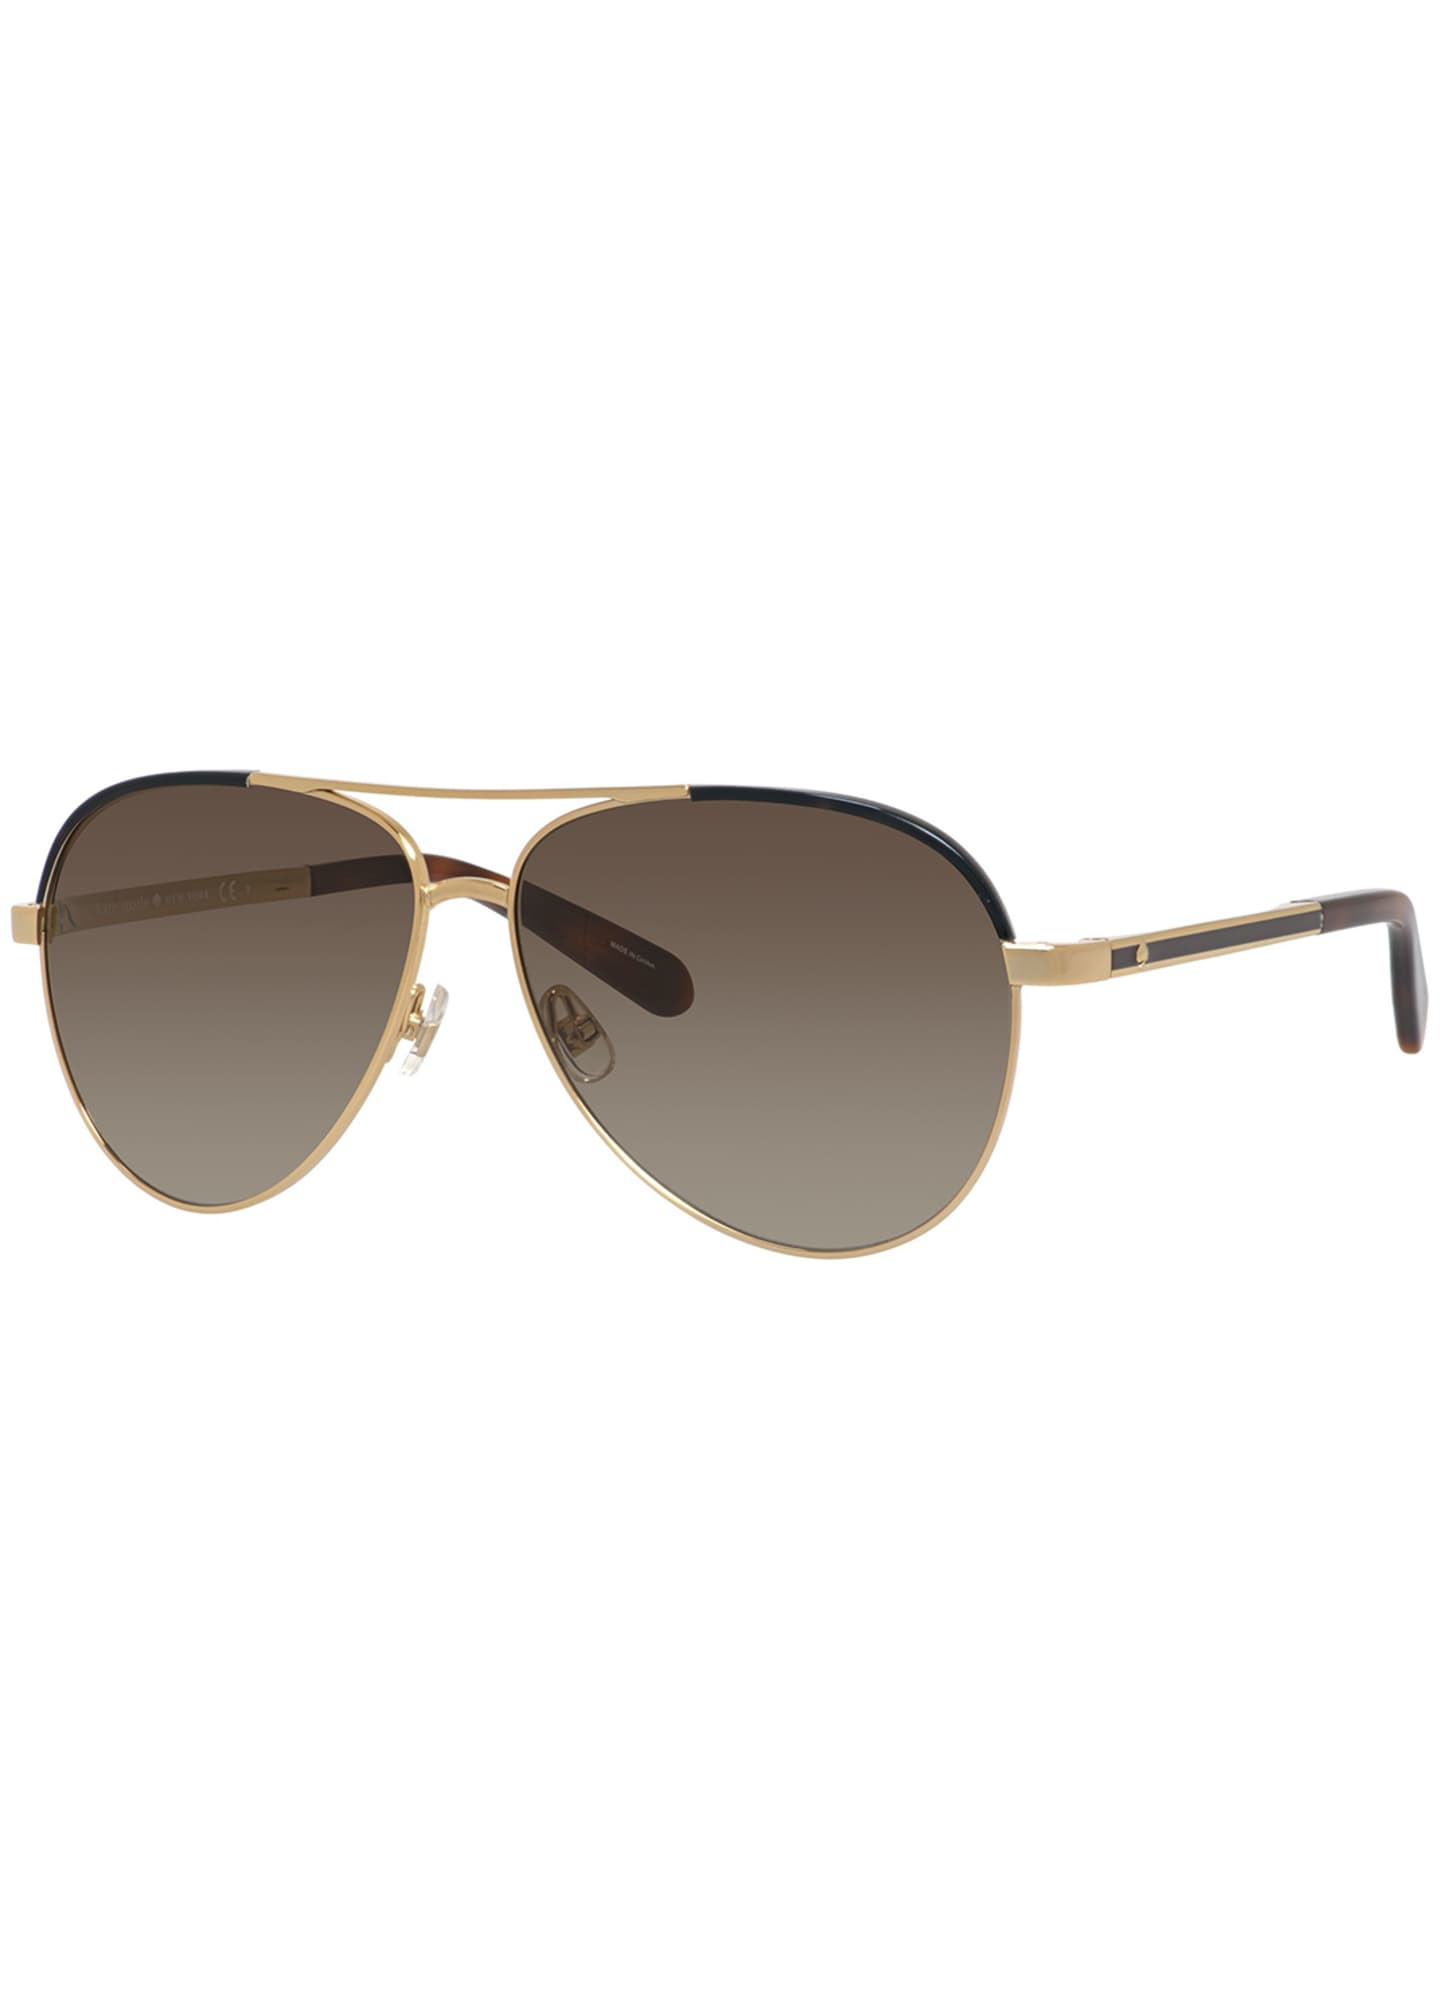 kate spade new york amaris two-tone aviator sunglasses